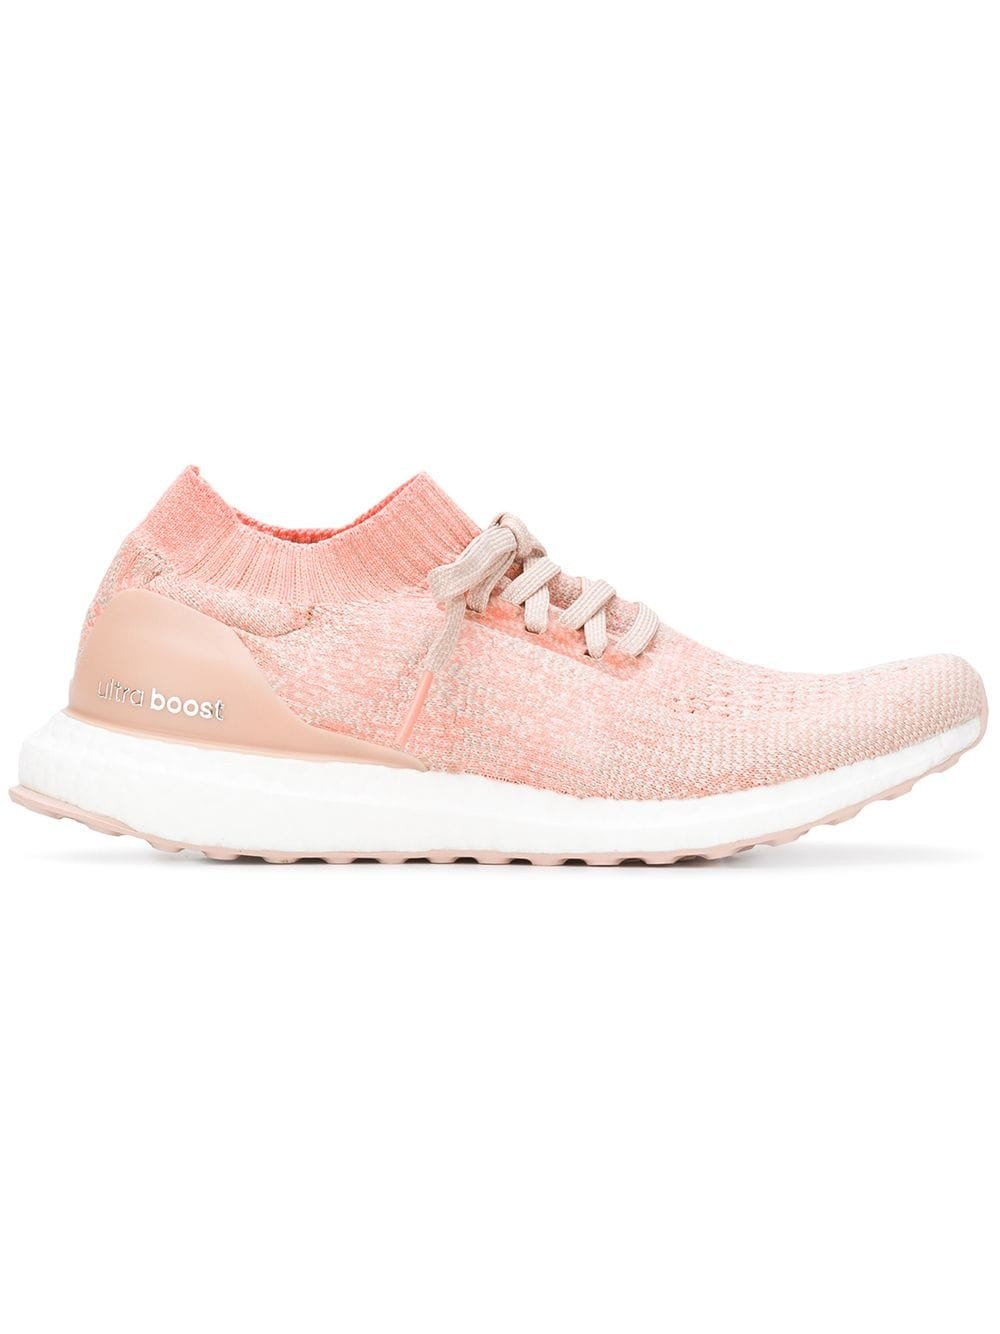 Adidas Femme Ultraboost Uncaged 'Ash Pearl' BB6488